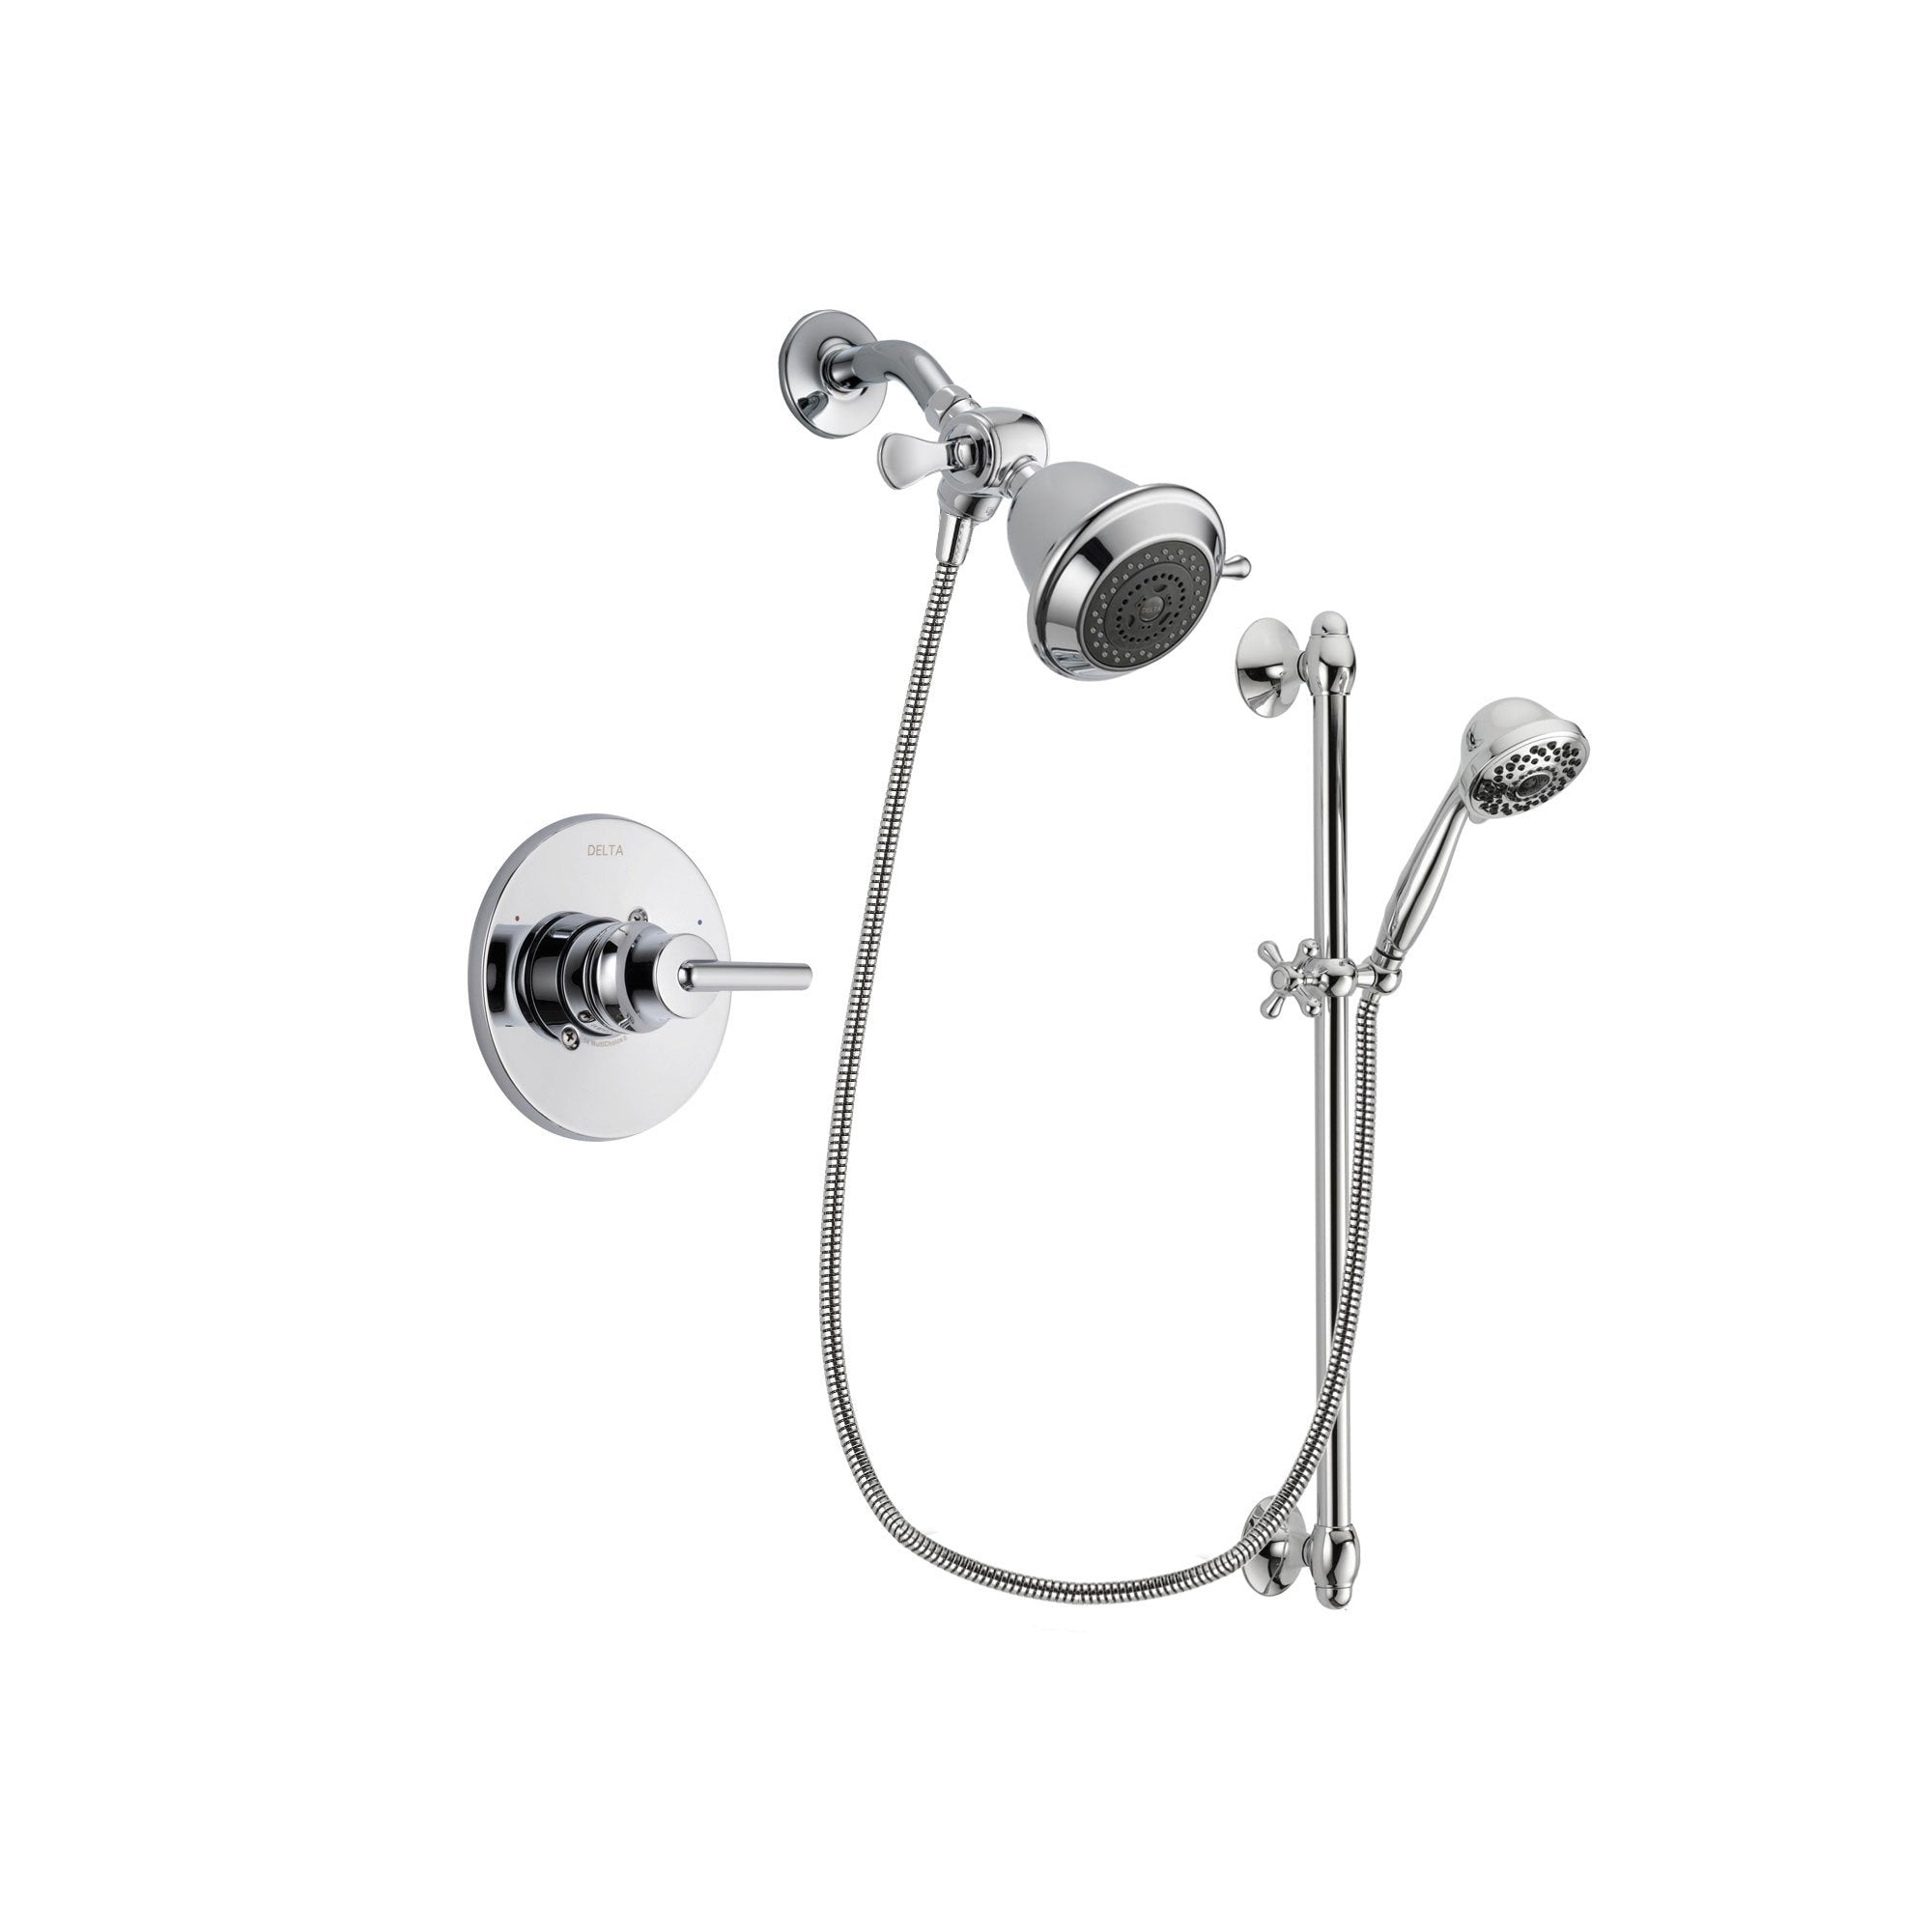 Delta Trinsic Chrome Shower Faucet System w/ Showerhead and Hand Shower DSP0574V